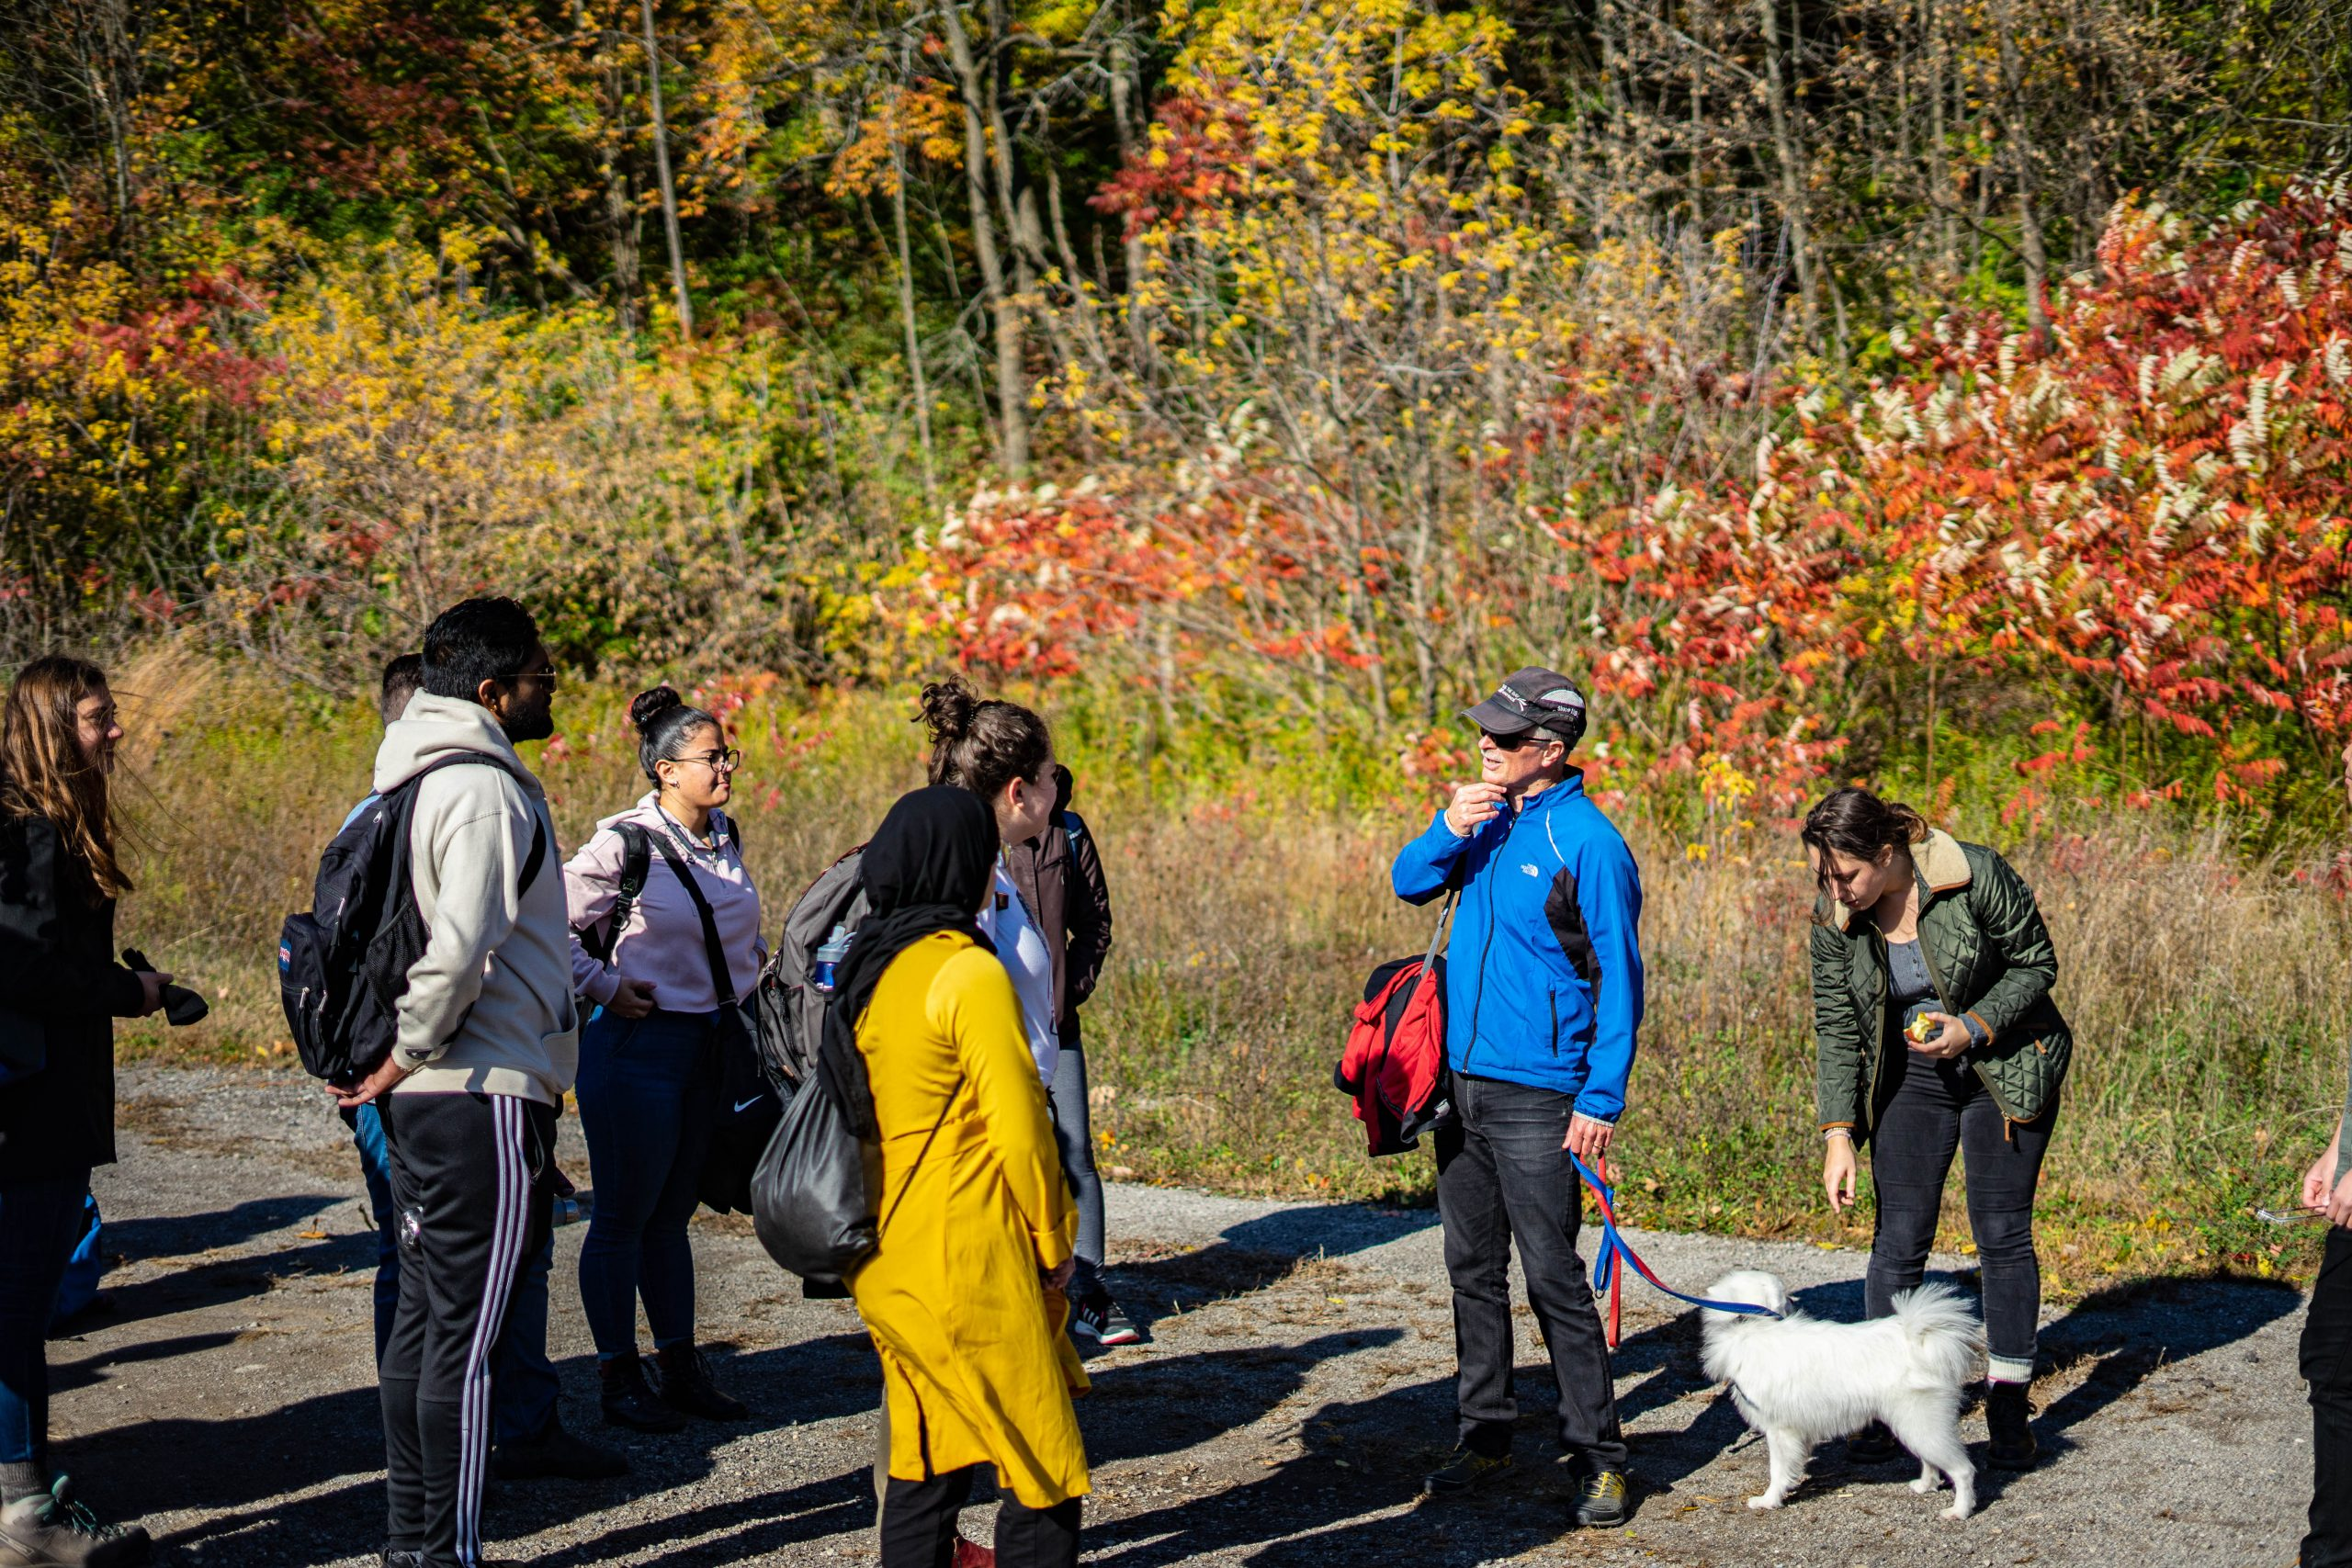 Students having a class discussion outdoors in the Fall. Trees are in the background with changing leaf colours.